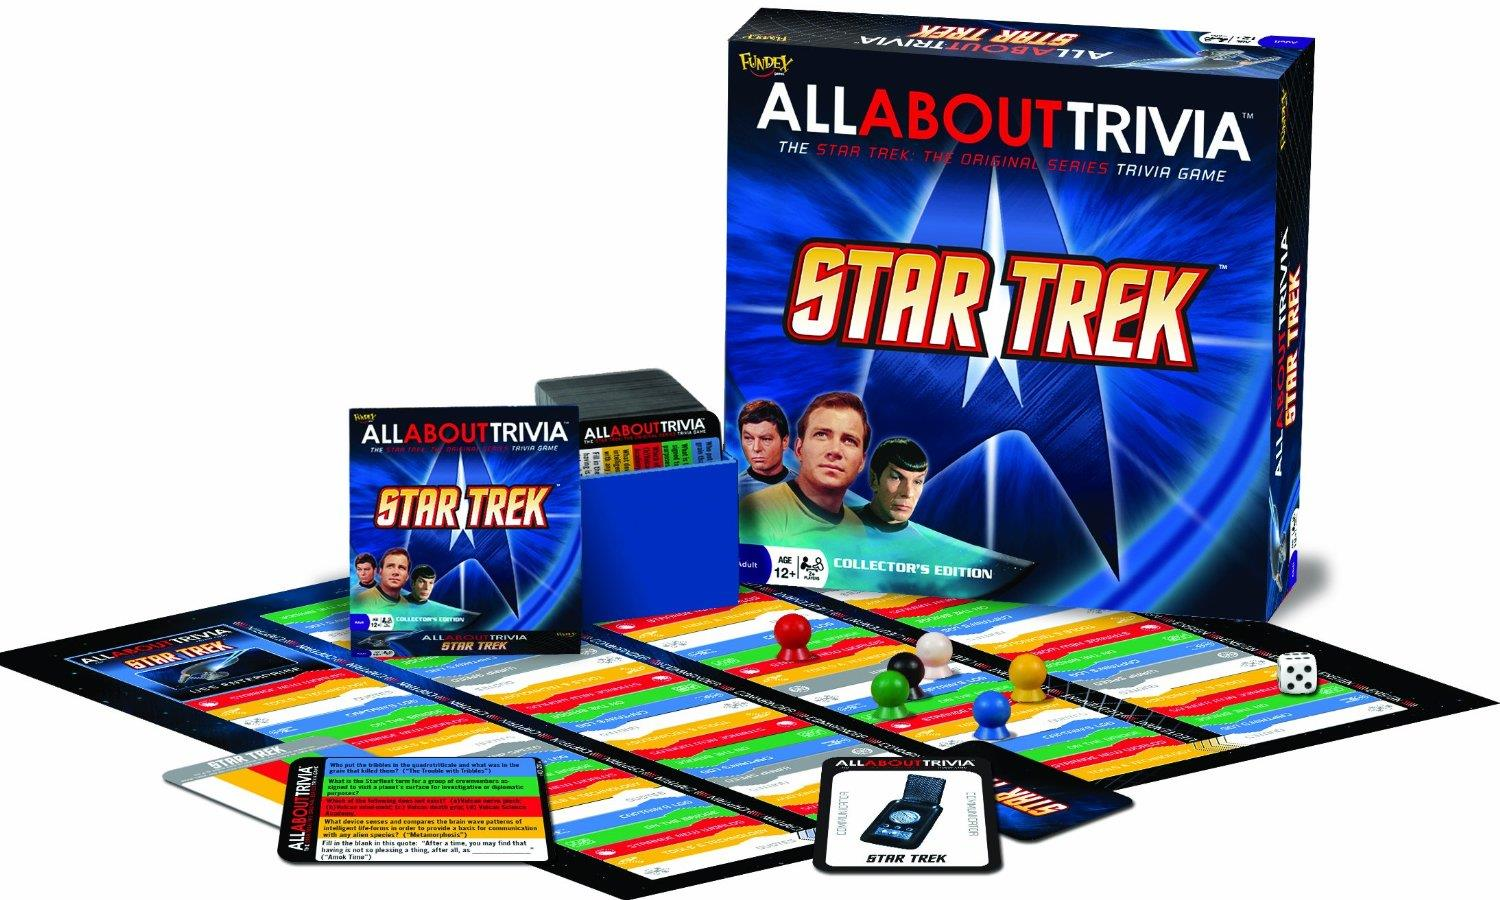 All About Trivia Star Trek Great Condition by Fundex Games